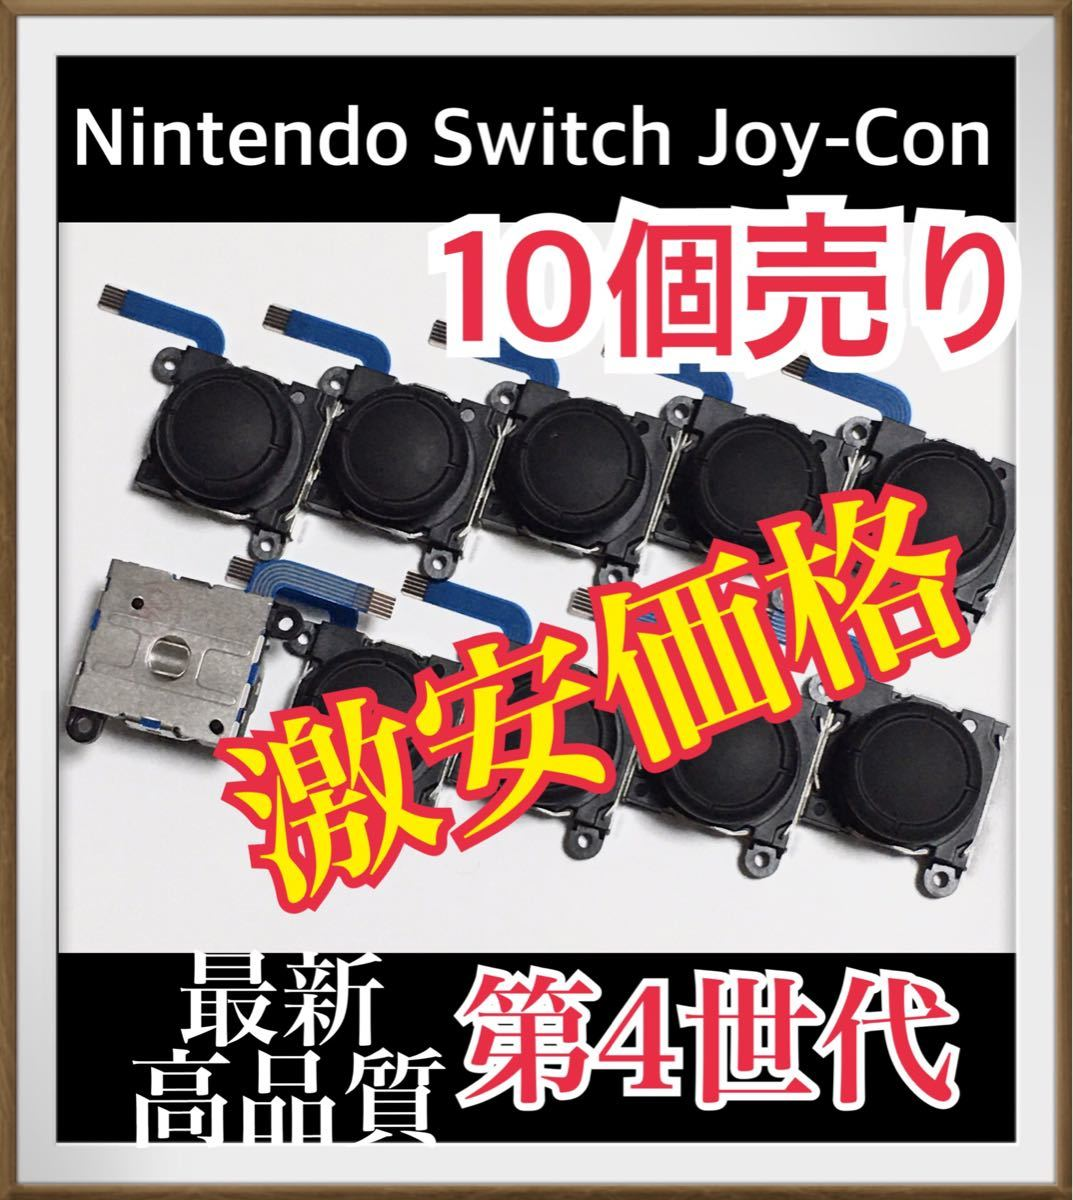 Nintendo Switch Joy-Con スティック10個